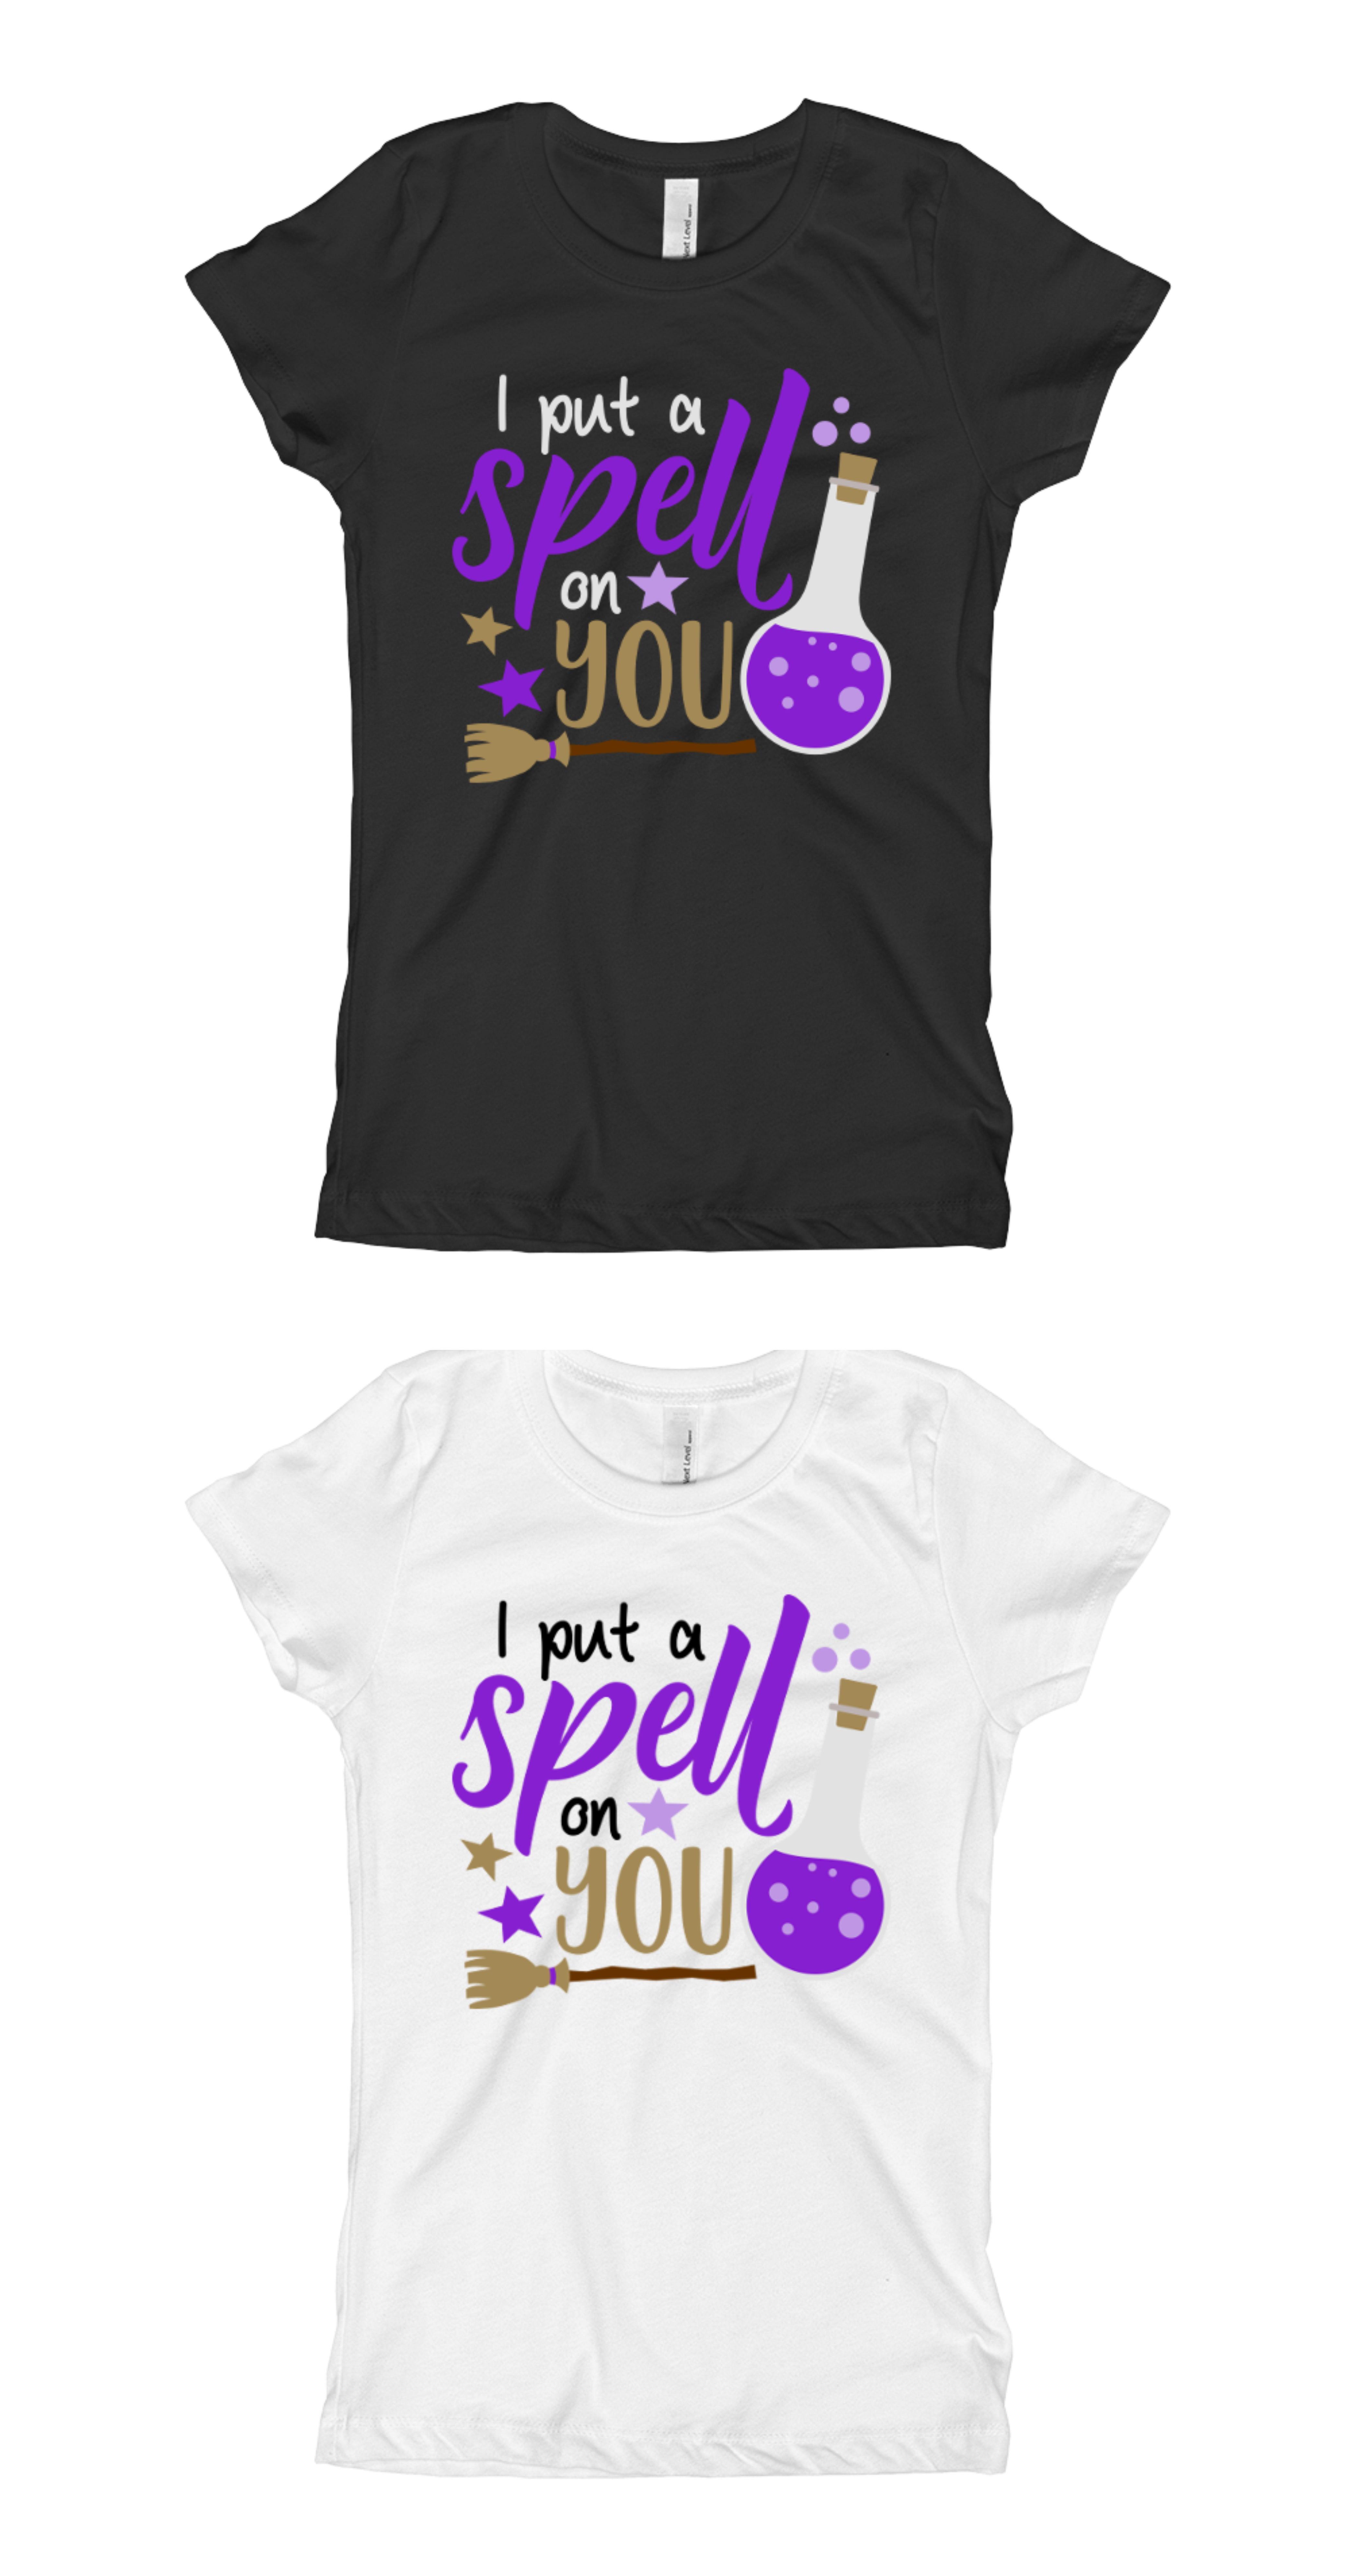 7d80c36d Girls Halloween Shirt Baby Outift - I Put a Spell on You Girls Shirt ...